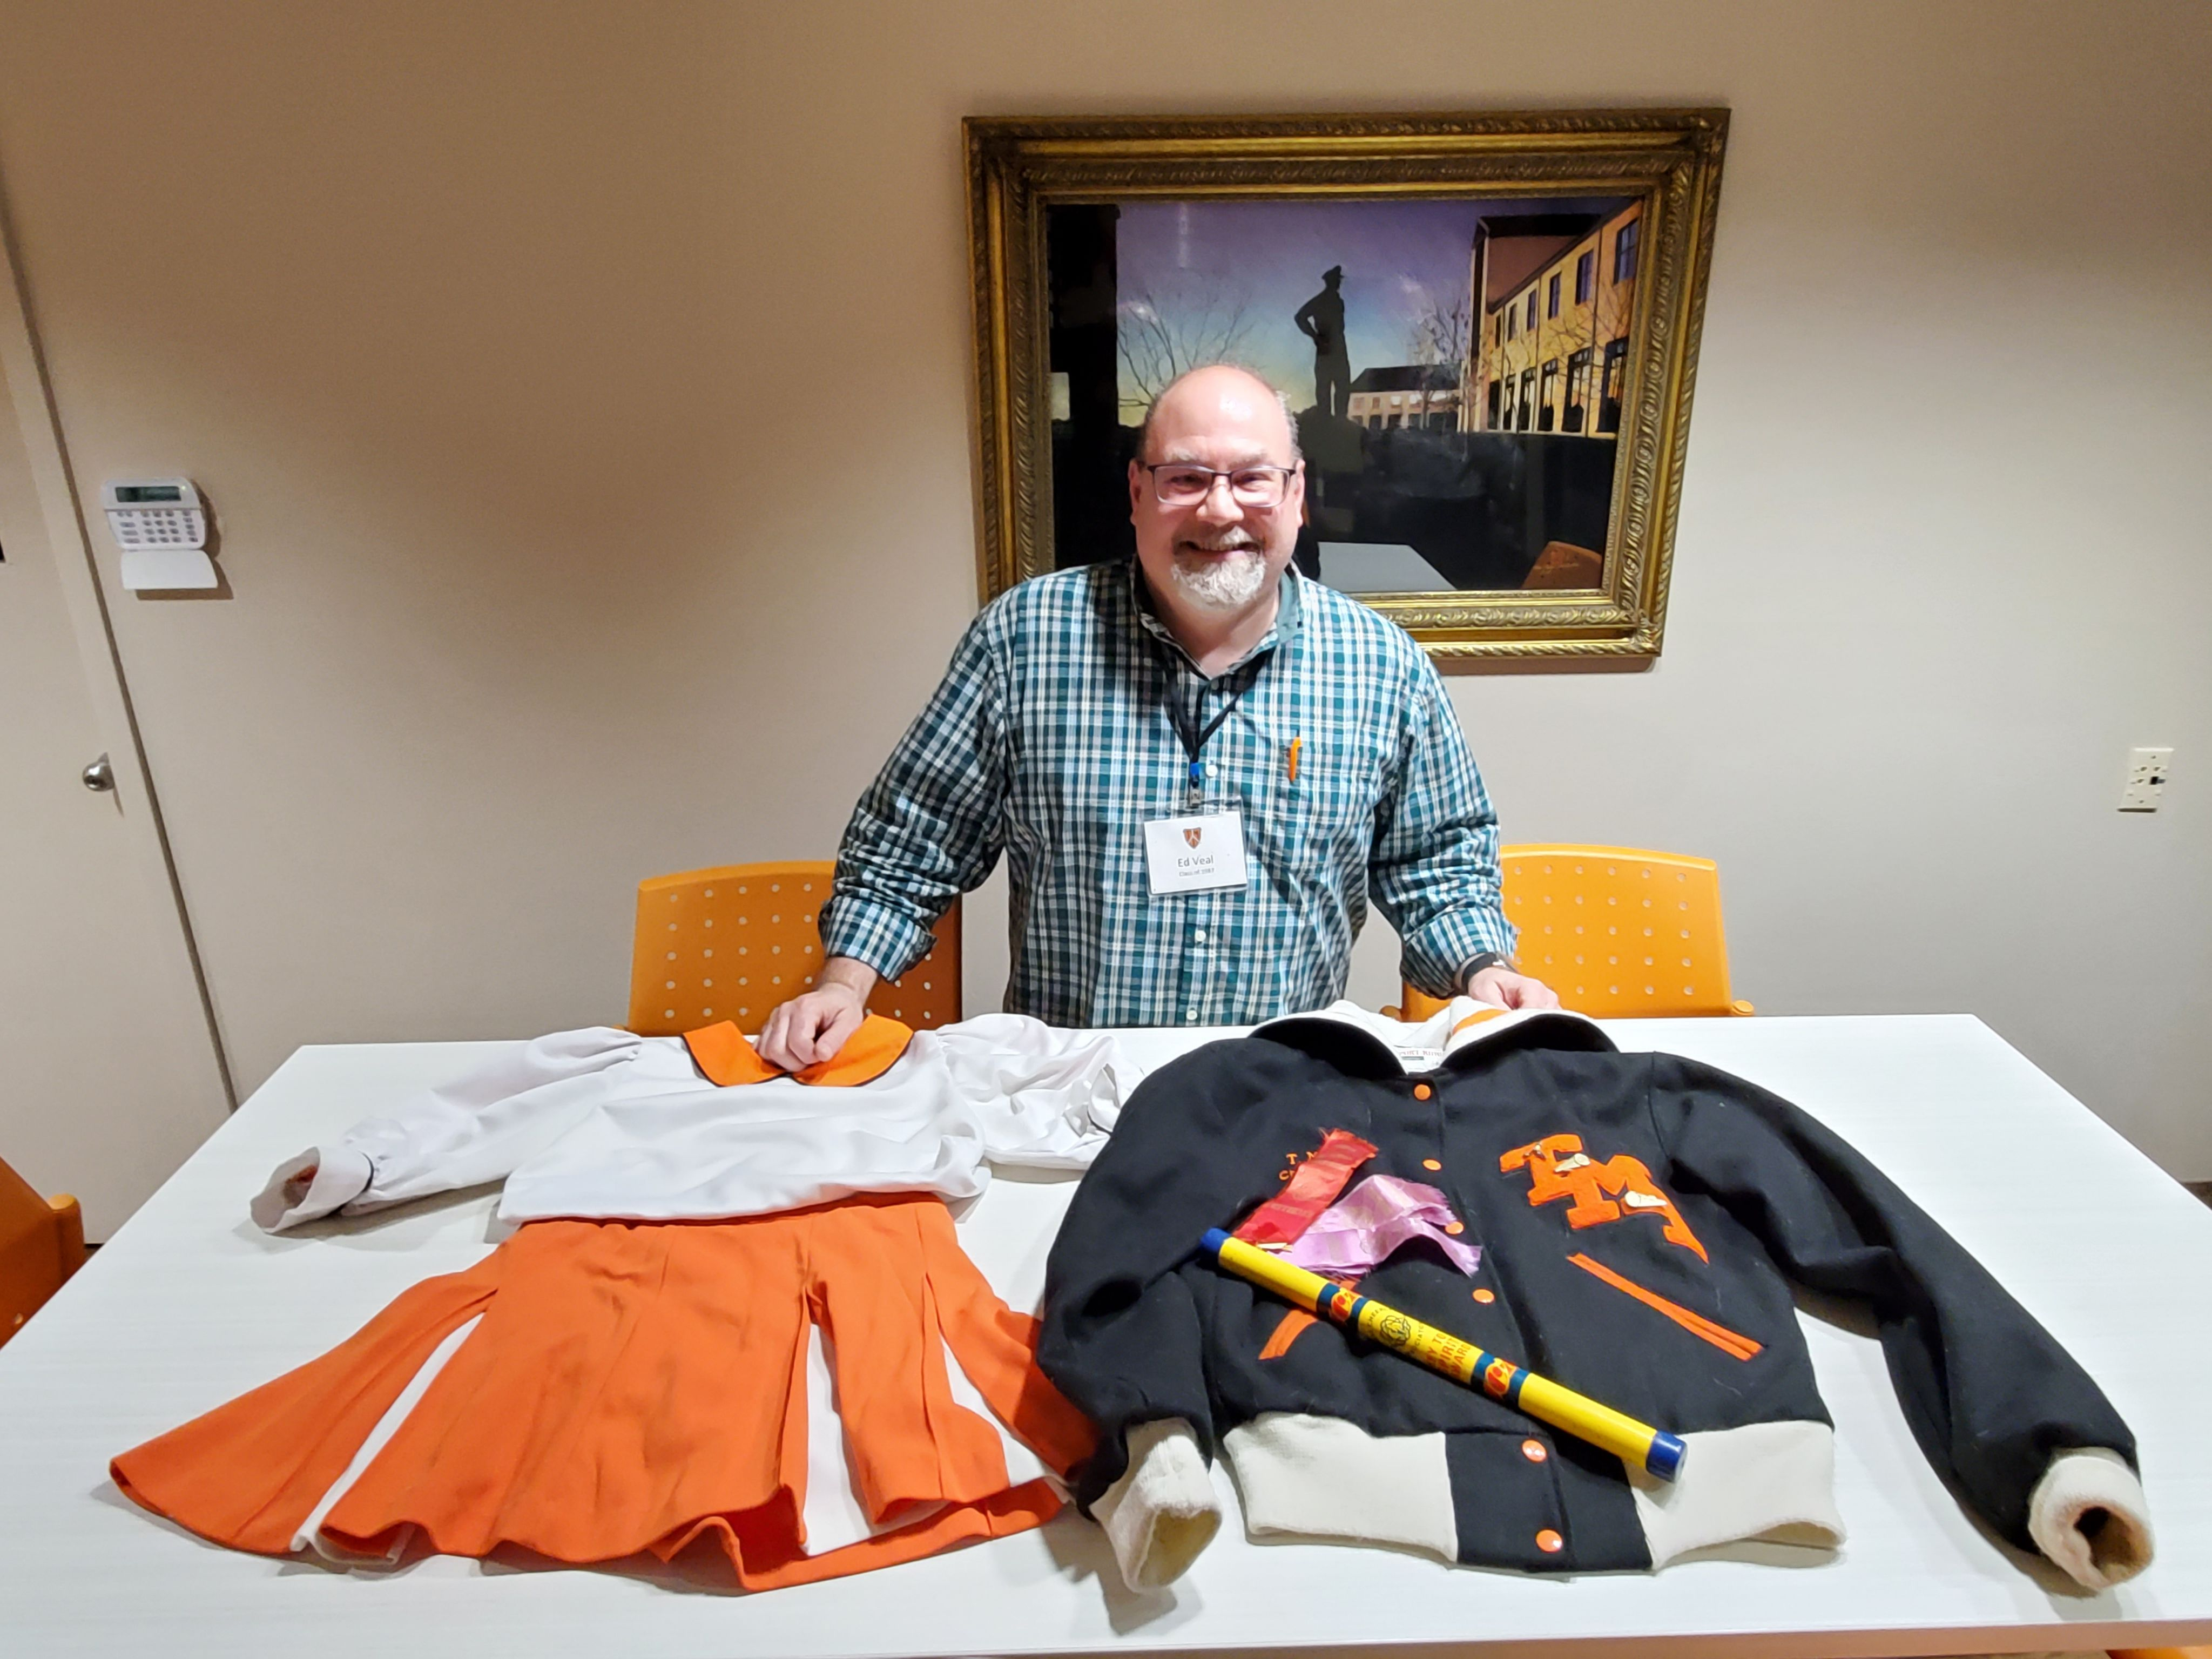 Ed Veal '87 with cheer gear from Mary Veal '89.jpg